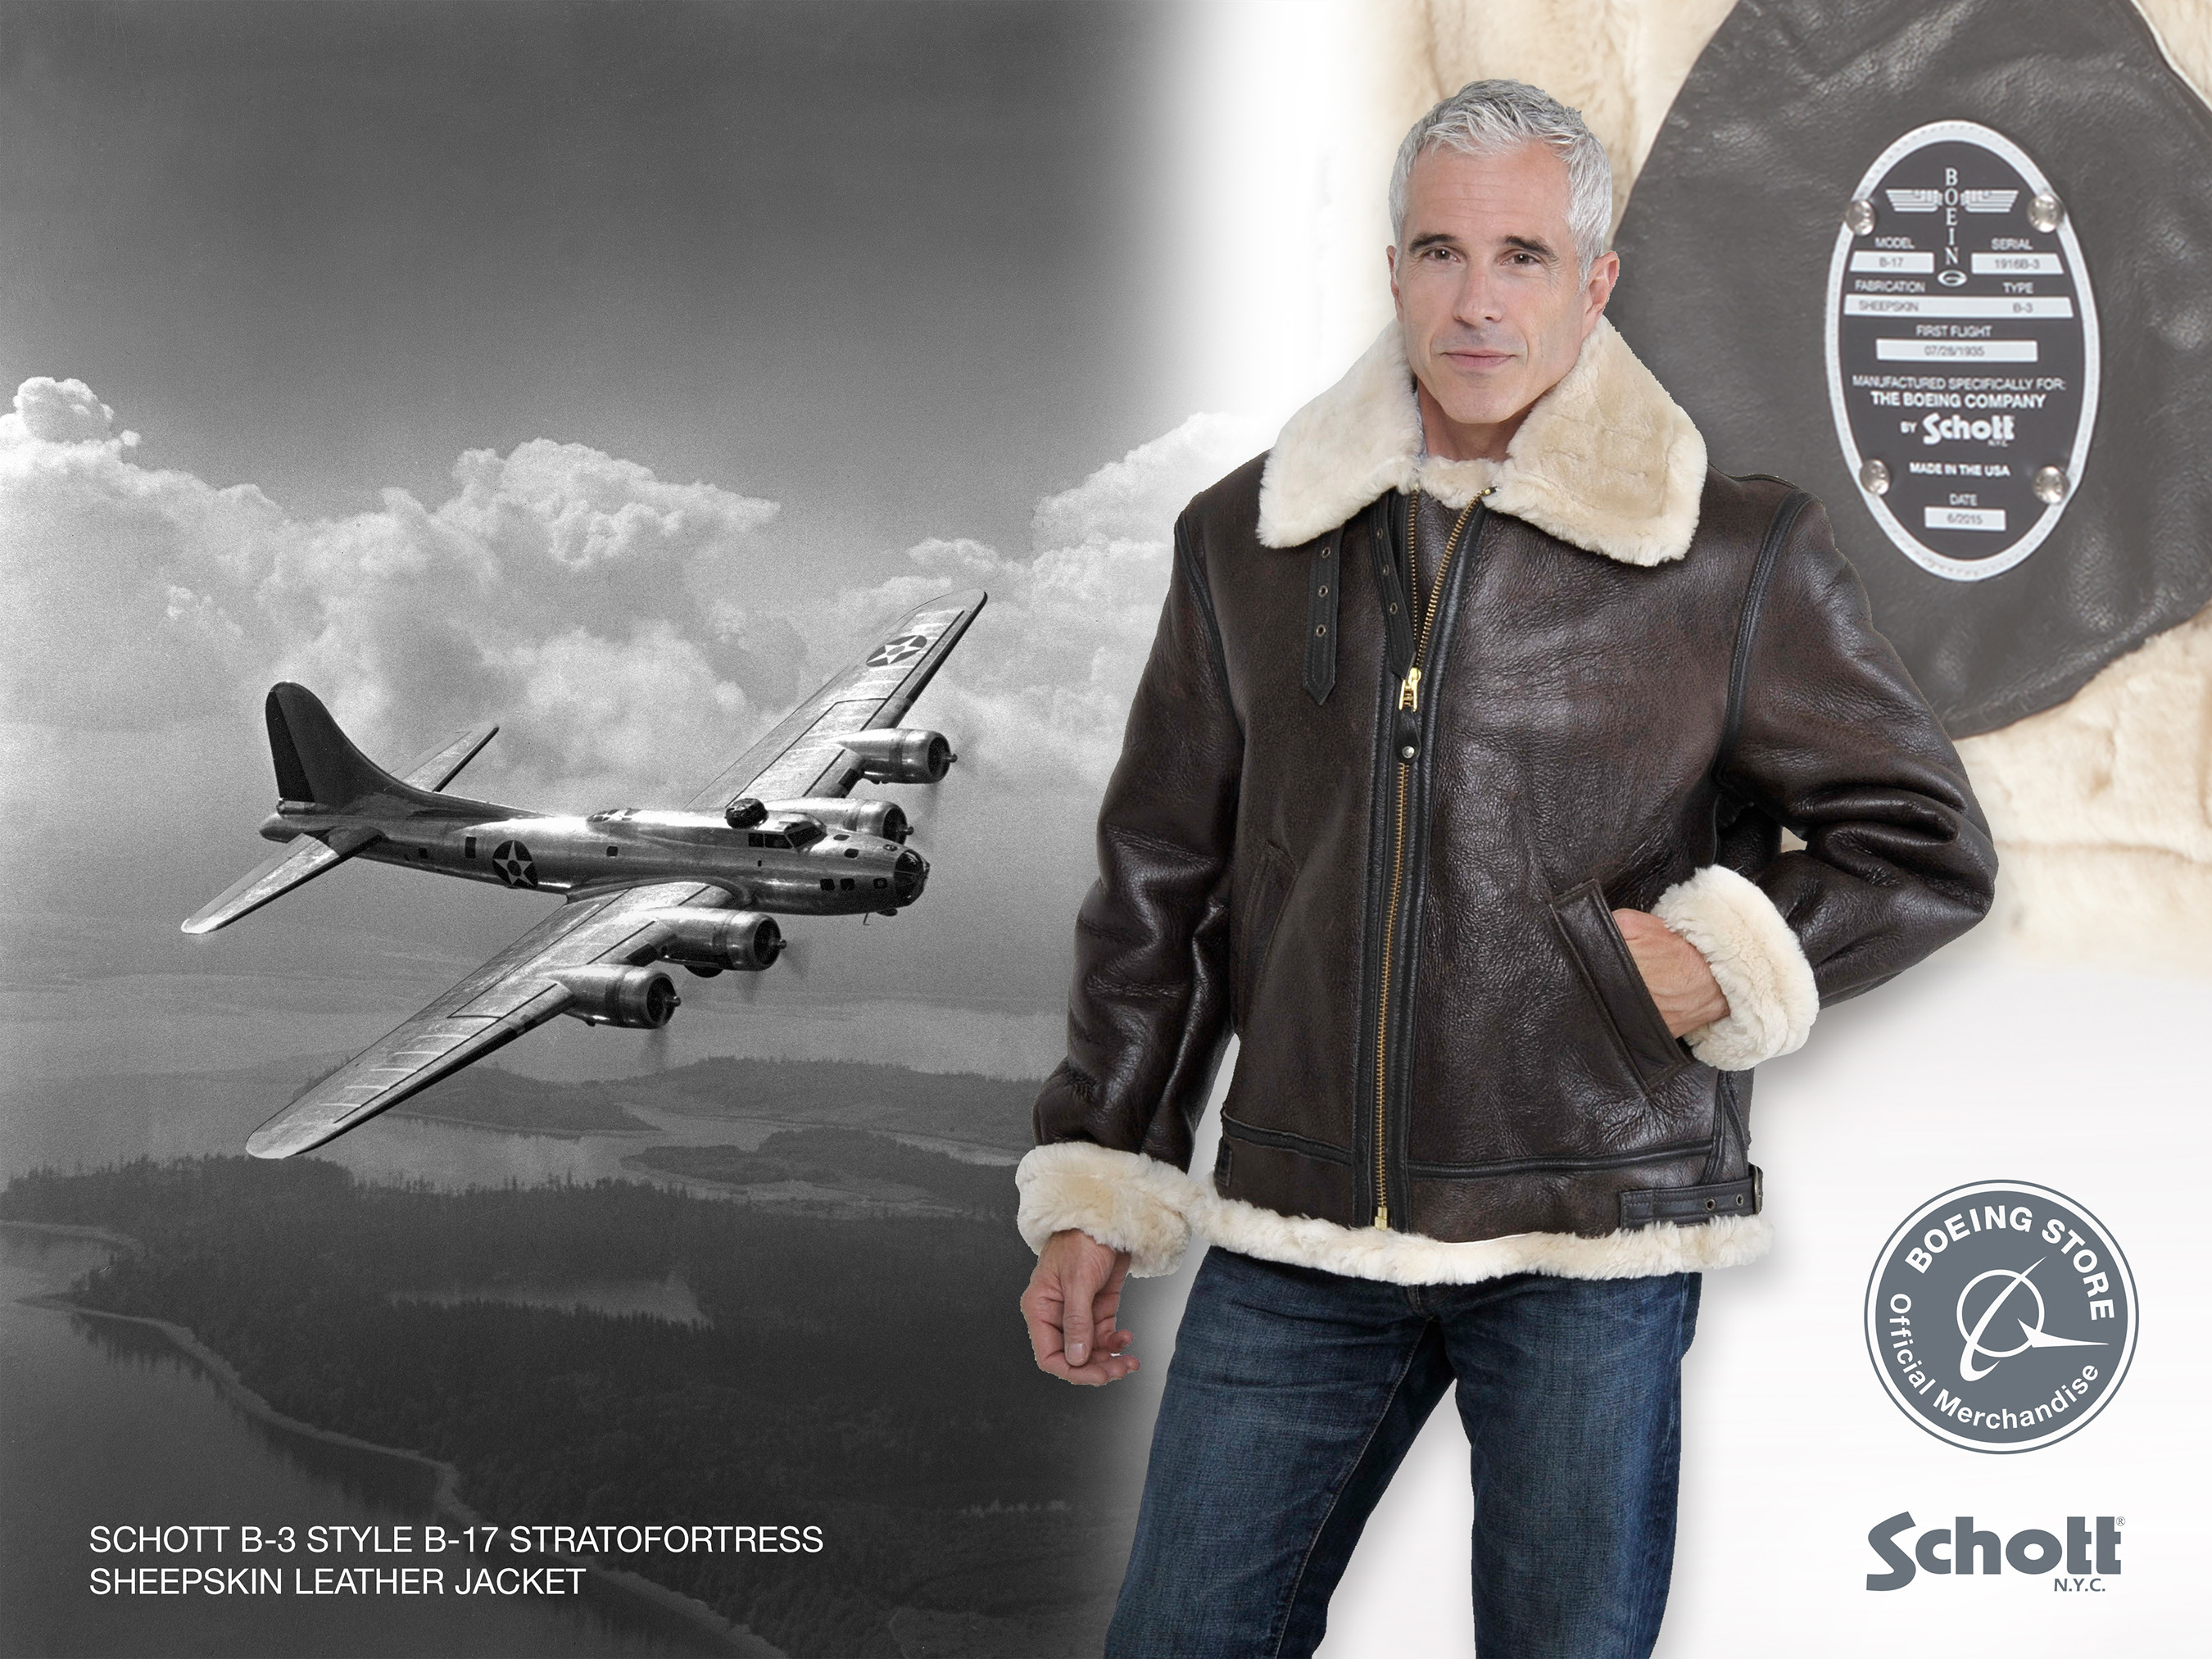 "The B-3 flight jacket was issued to U.S. Army Air Corps bomber flight crews during WWII. The commemorative version features salute a Boeing heritage legend, the B-17 Flying Fortress bomber, with a replica ""First Flight"" data plate riveted onto the leather pocket bag and sewn-in cloth patch commemorating the B-17 and Boeing."